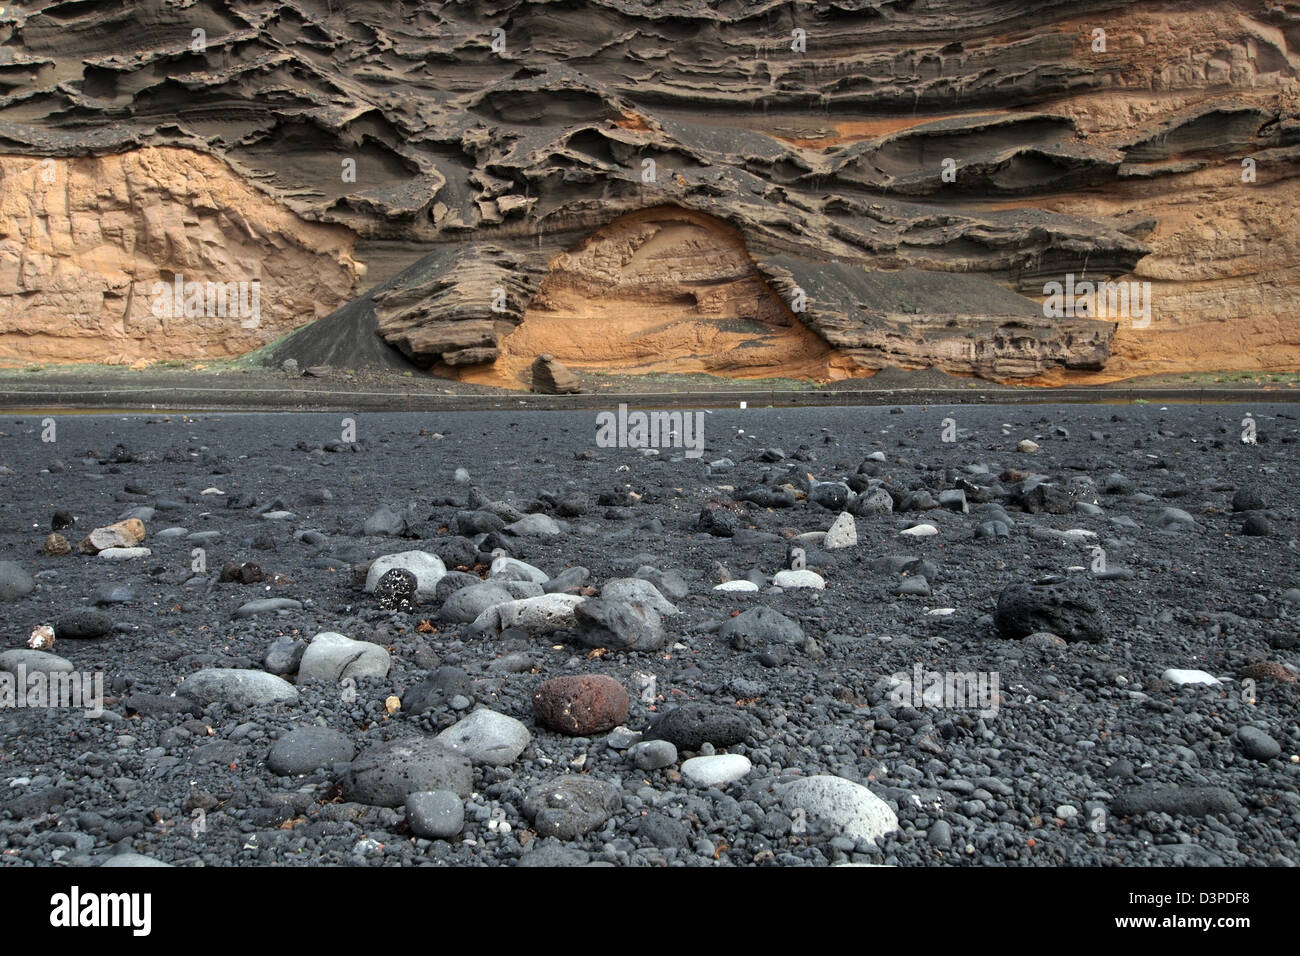 the volcanic black sands of el golfo beach, lanzarote, canary islands, spain - Stock Image